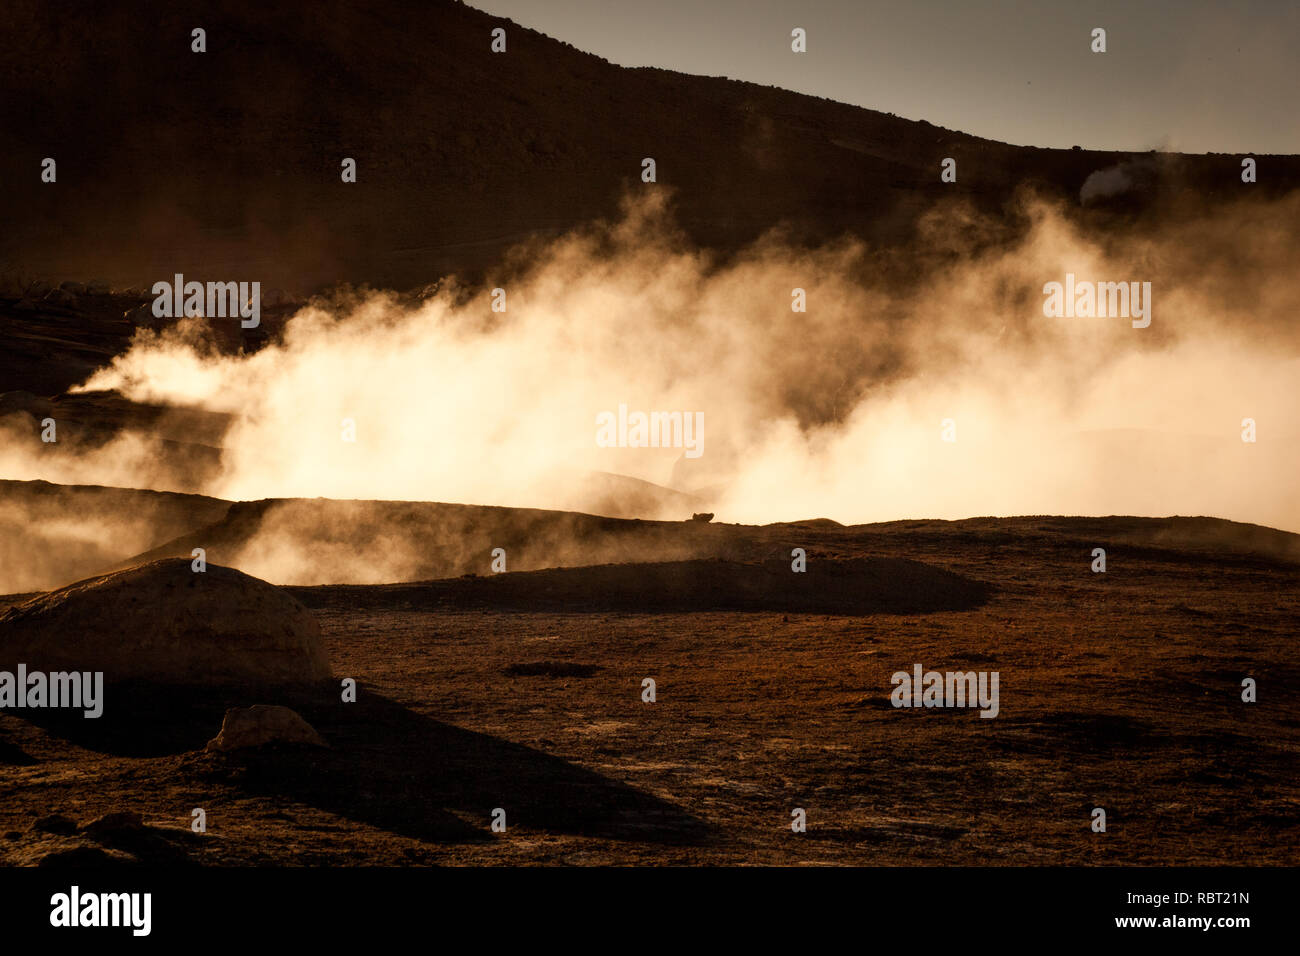 Steam rises from a fumarole as geothermal activity under the ground is producing clean, renewable and sustainable energy. - Stock Image